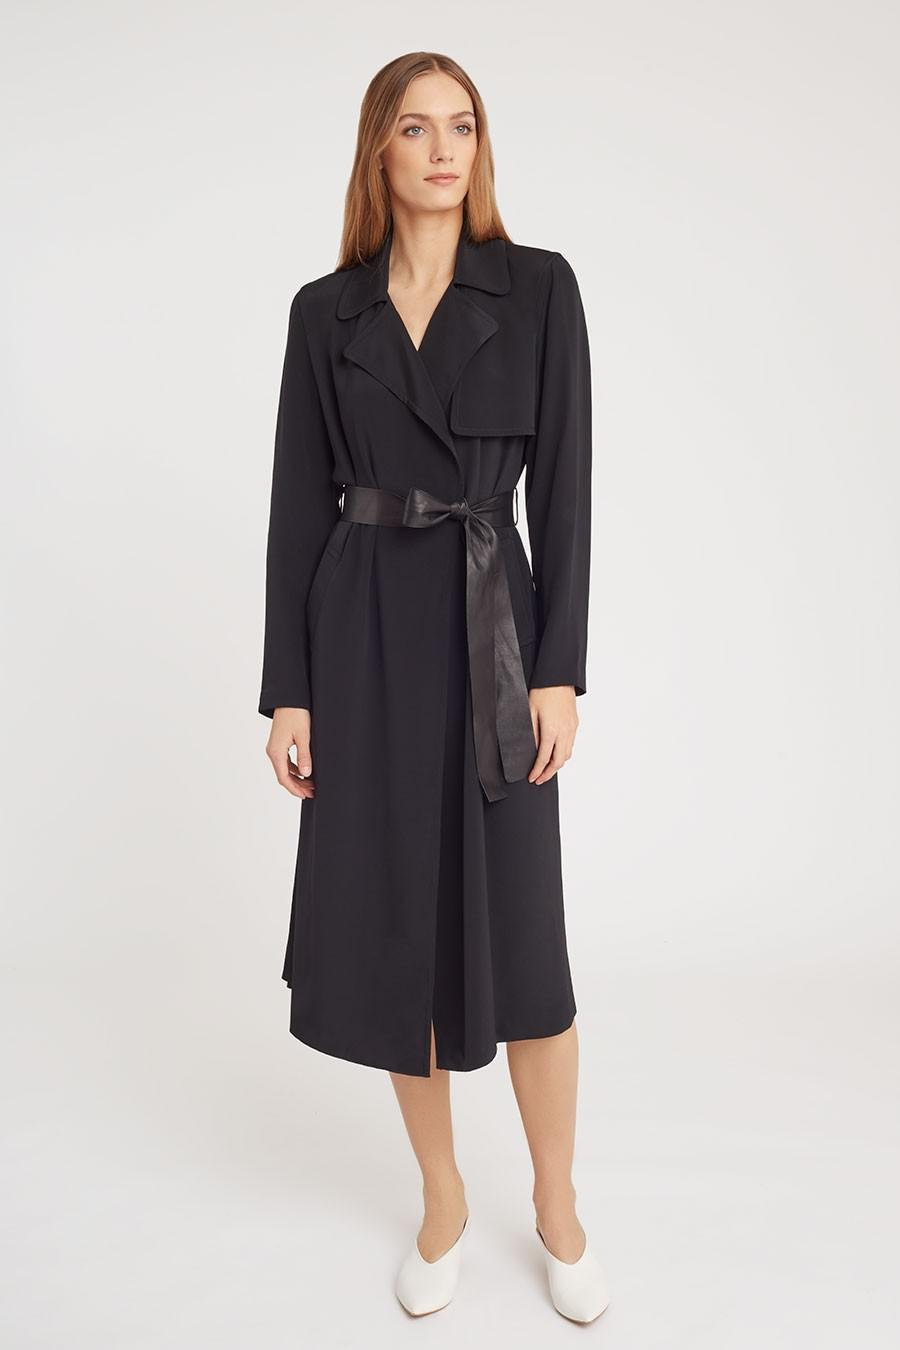 Women's Silk Classic Trench in Black | Size: 3